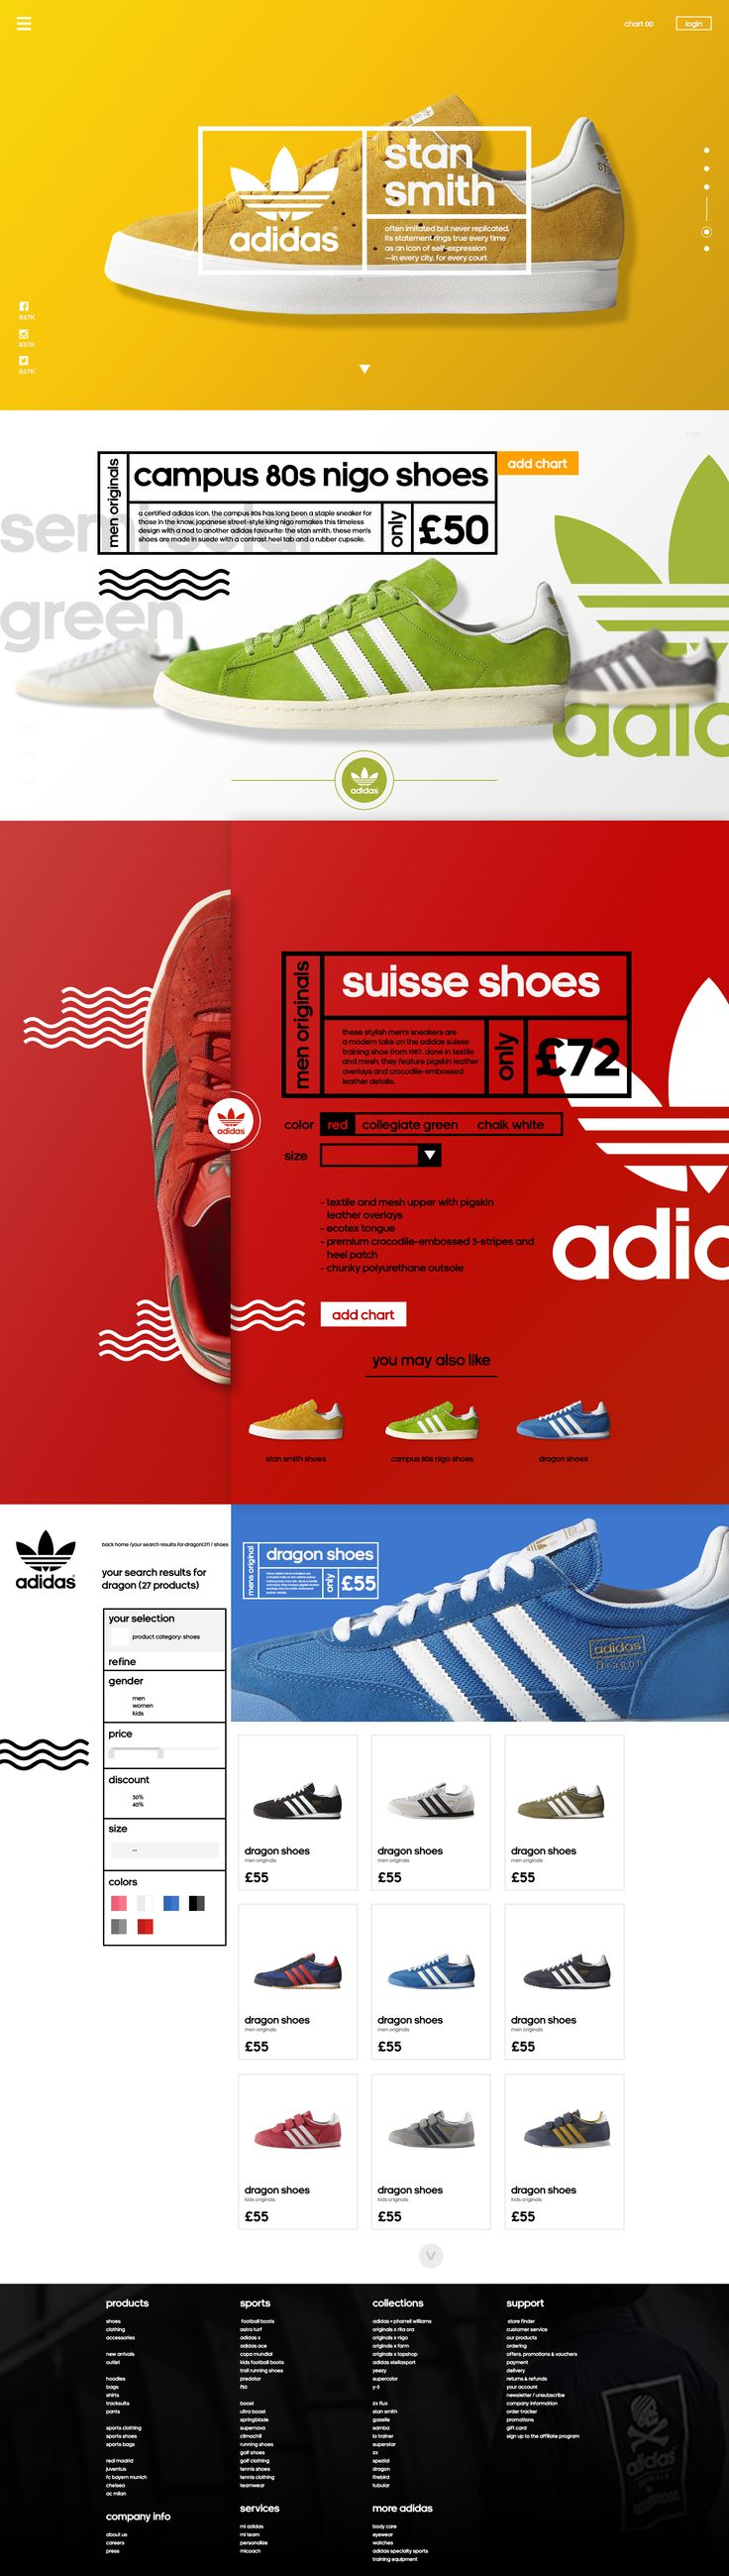 Adidas - Redesign Concept This project is non-commercial purposes. All photos and videos used in the project belong to Adidas. I made just for fun and study :) check me on https://dribbble.com/nugrahajatiutama to see another shot #design #webdesign #UI/UX